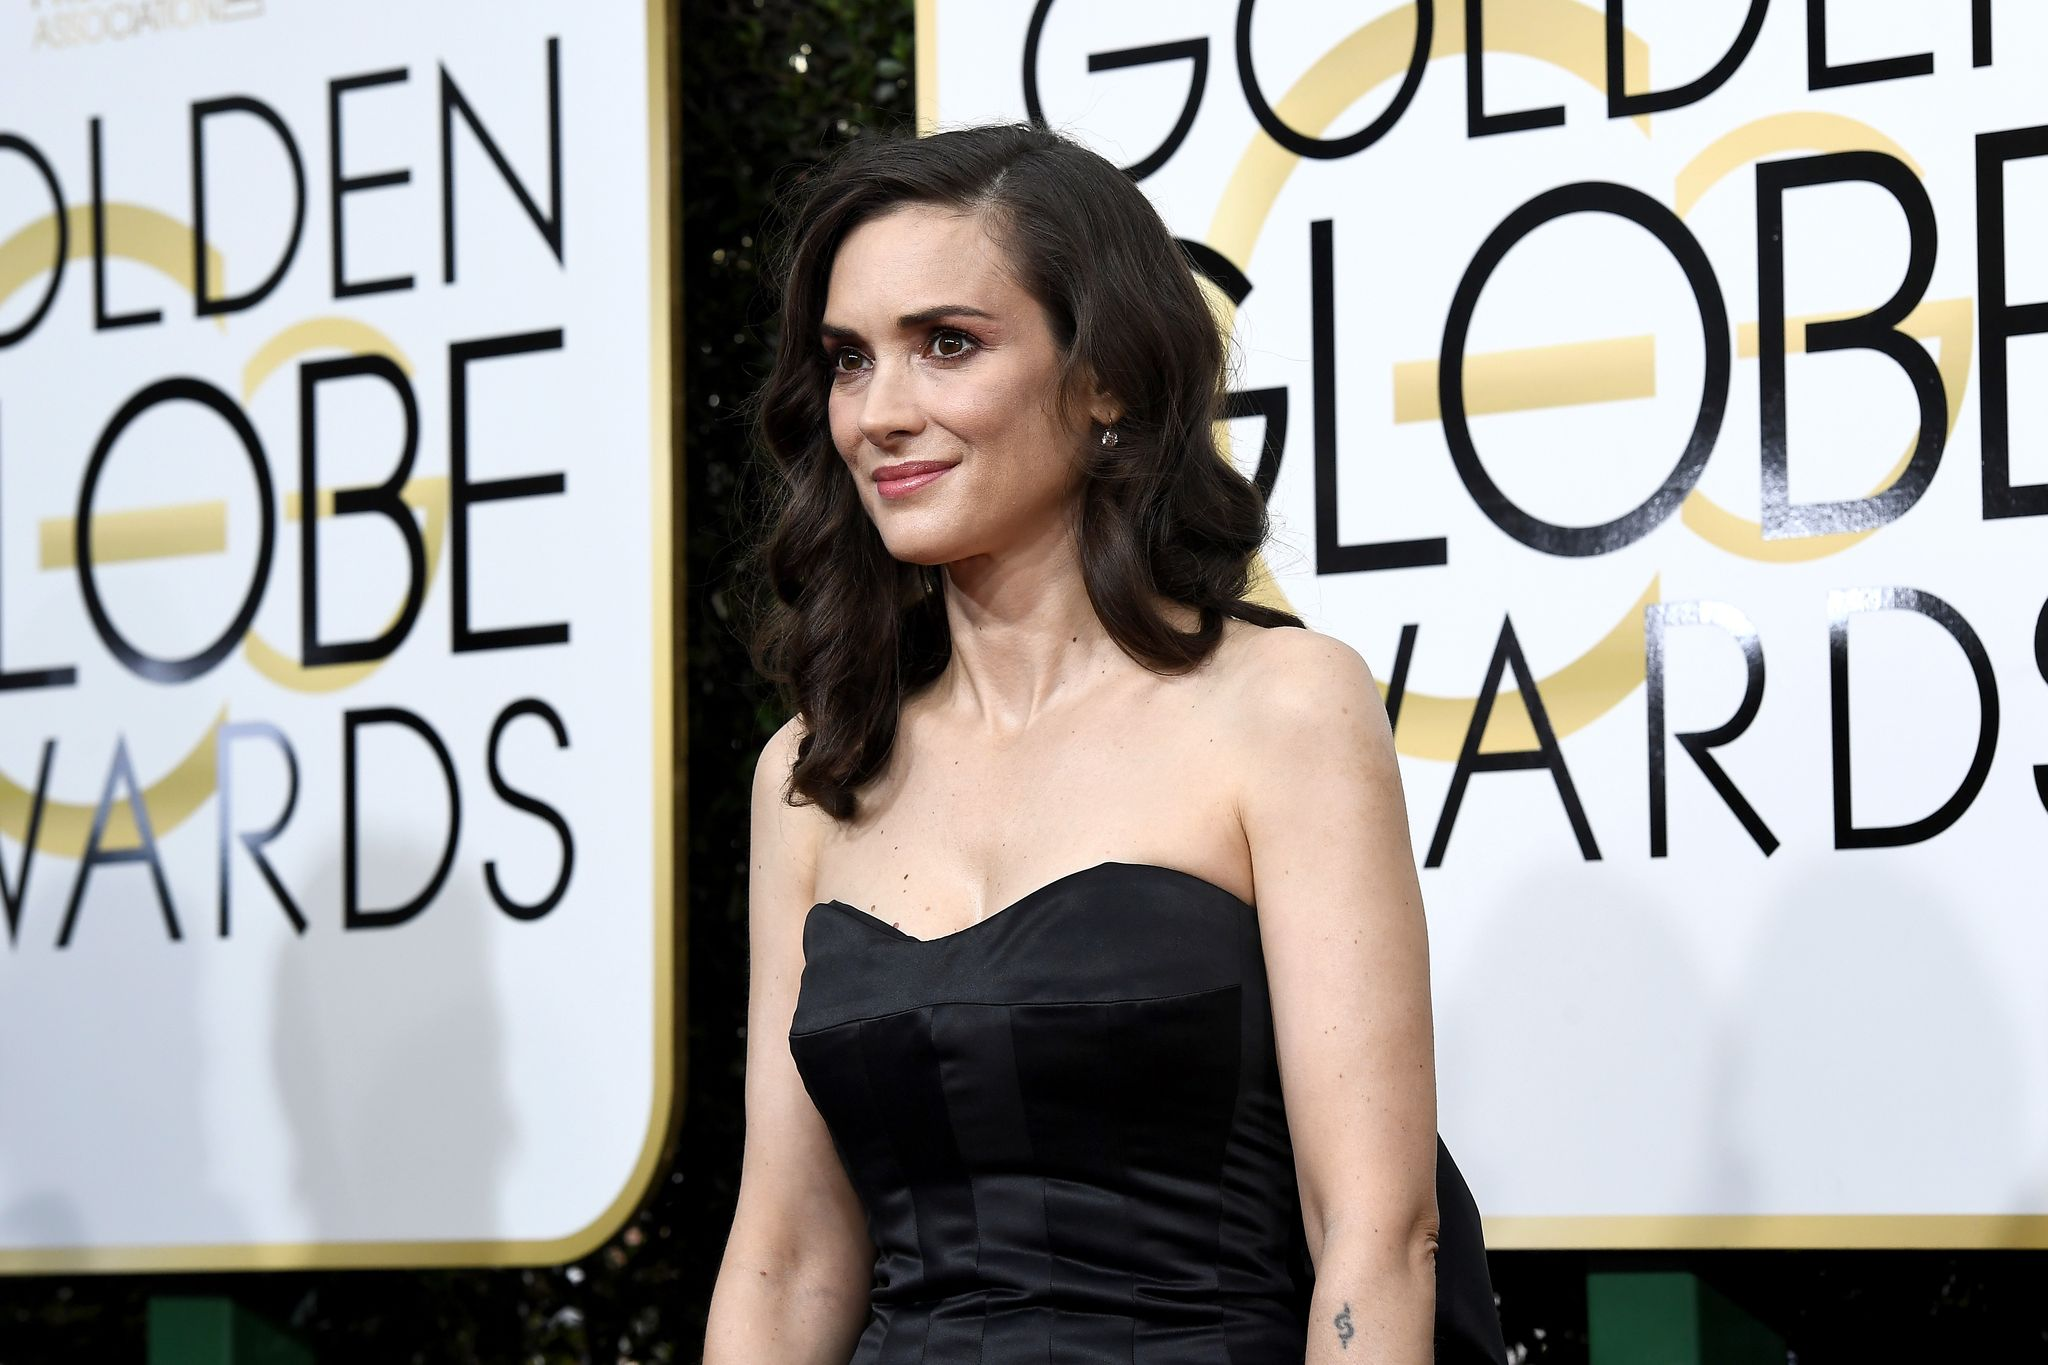 Winona Ryder at the 74th Annual Golden Globe Awards in Hollywood in 2017 | Source: Getty Images